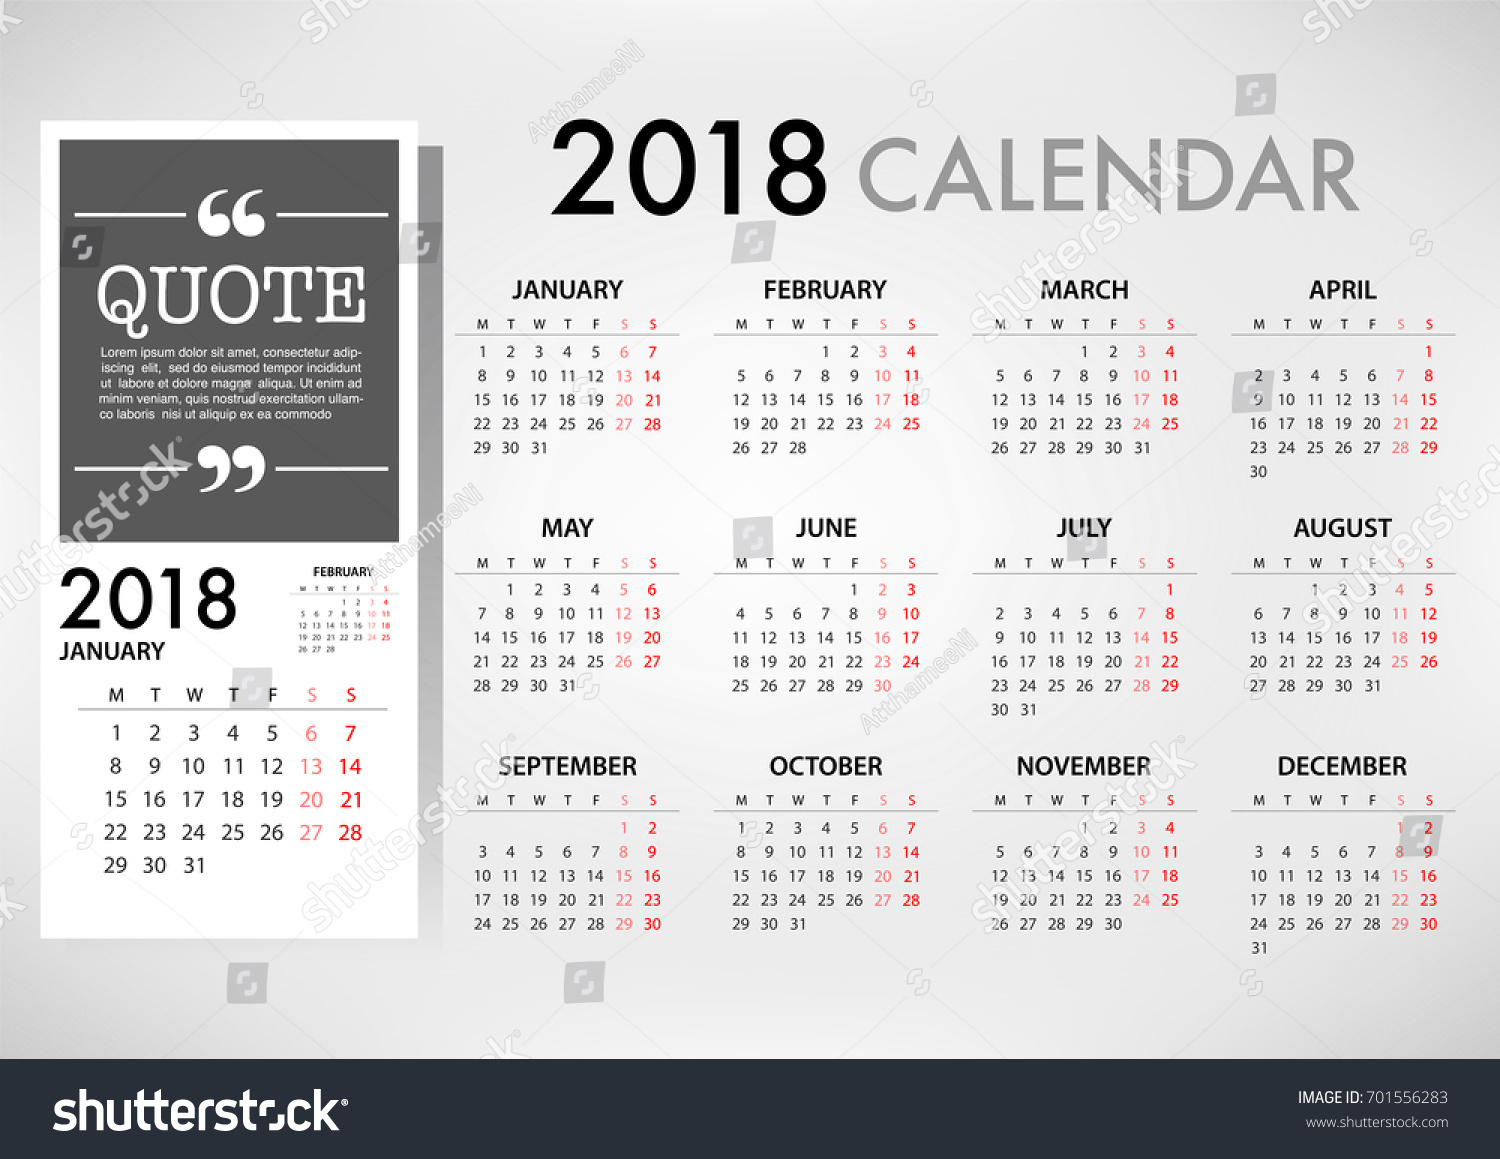 Calendar For Organization : Calendar on white background organization stock